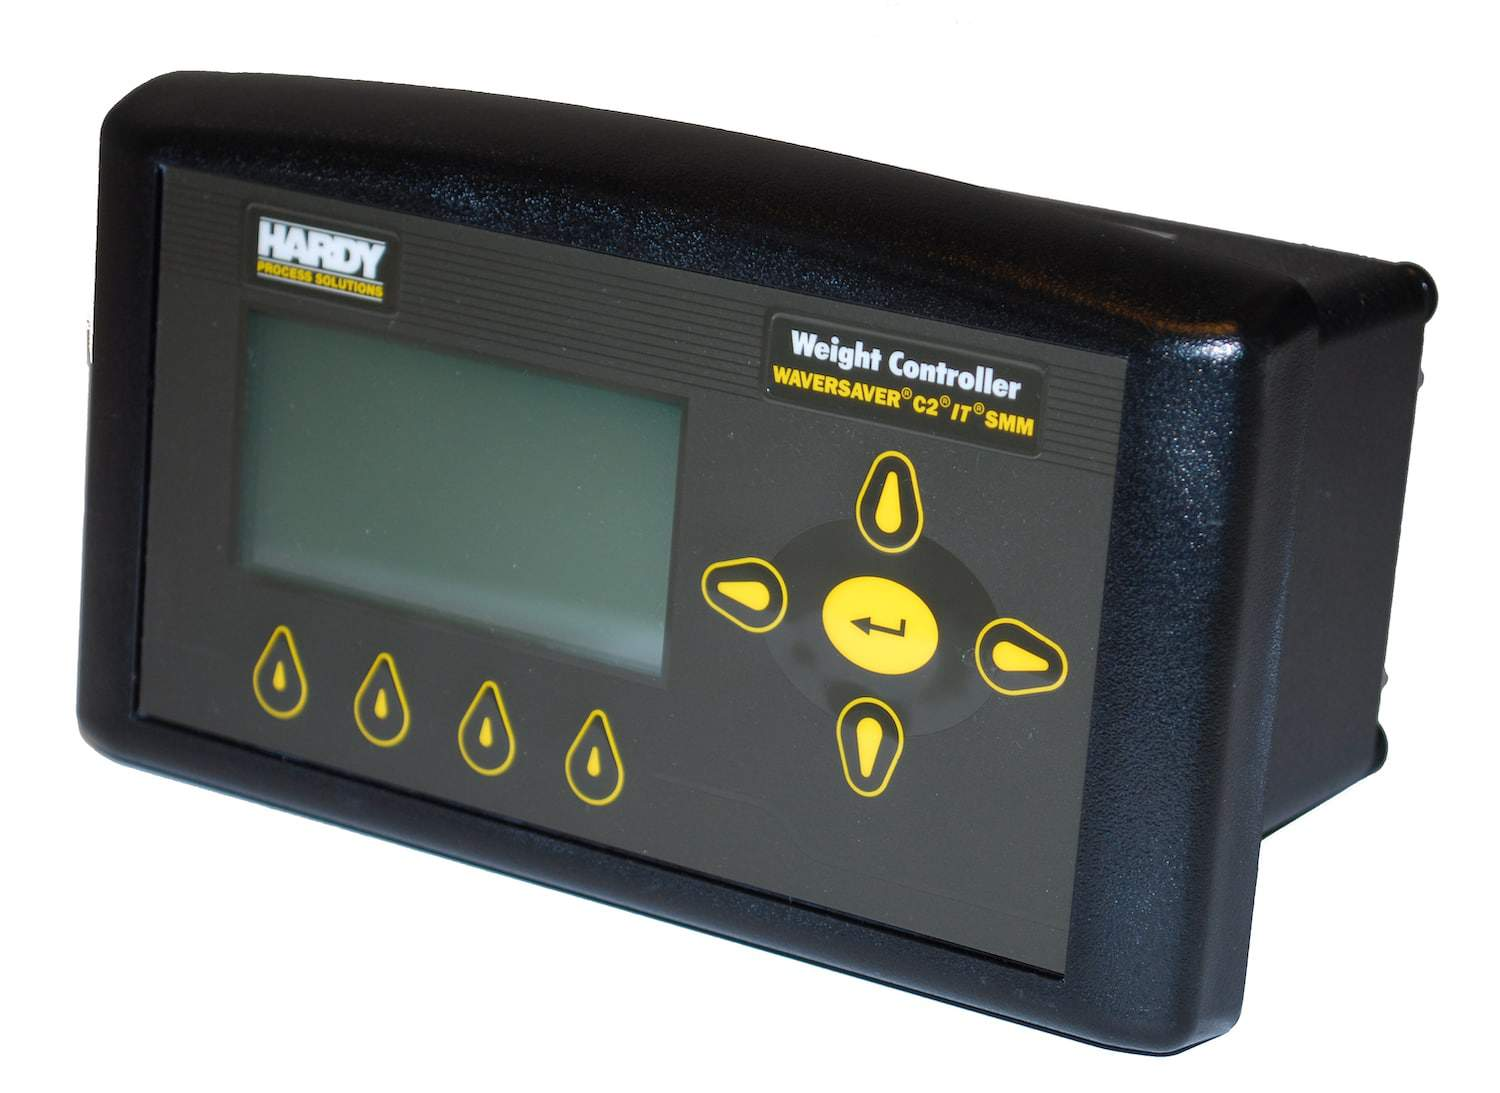 Hardy Process Solutions Now Shipping Profinet Card For Its HI4050+ Weight Controller